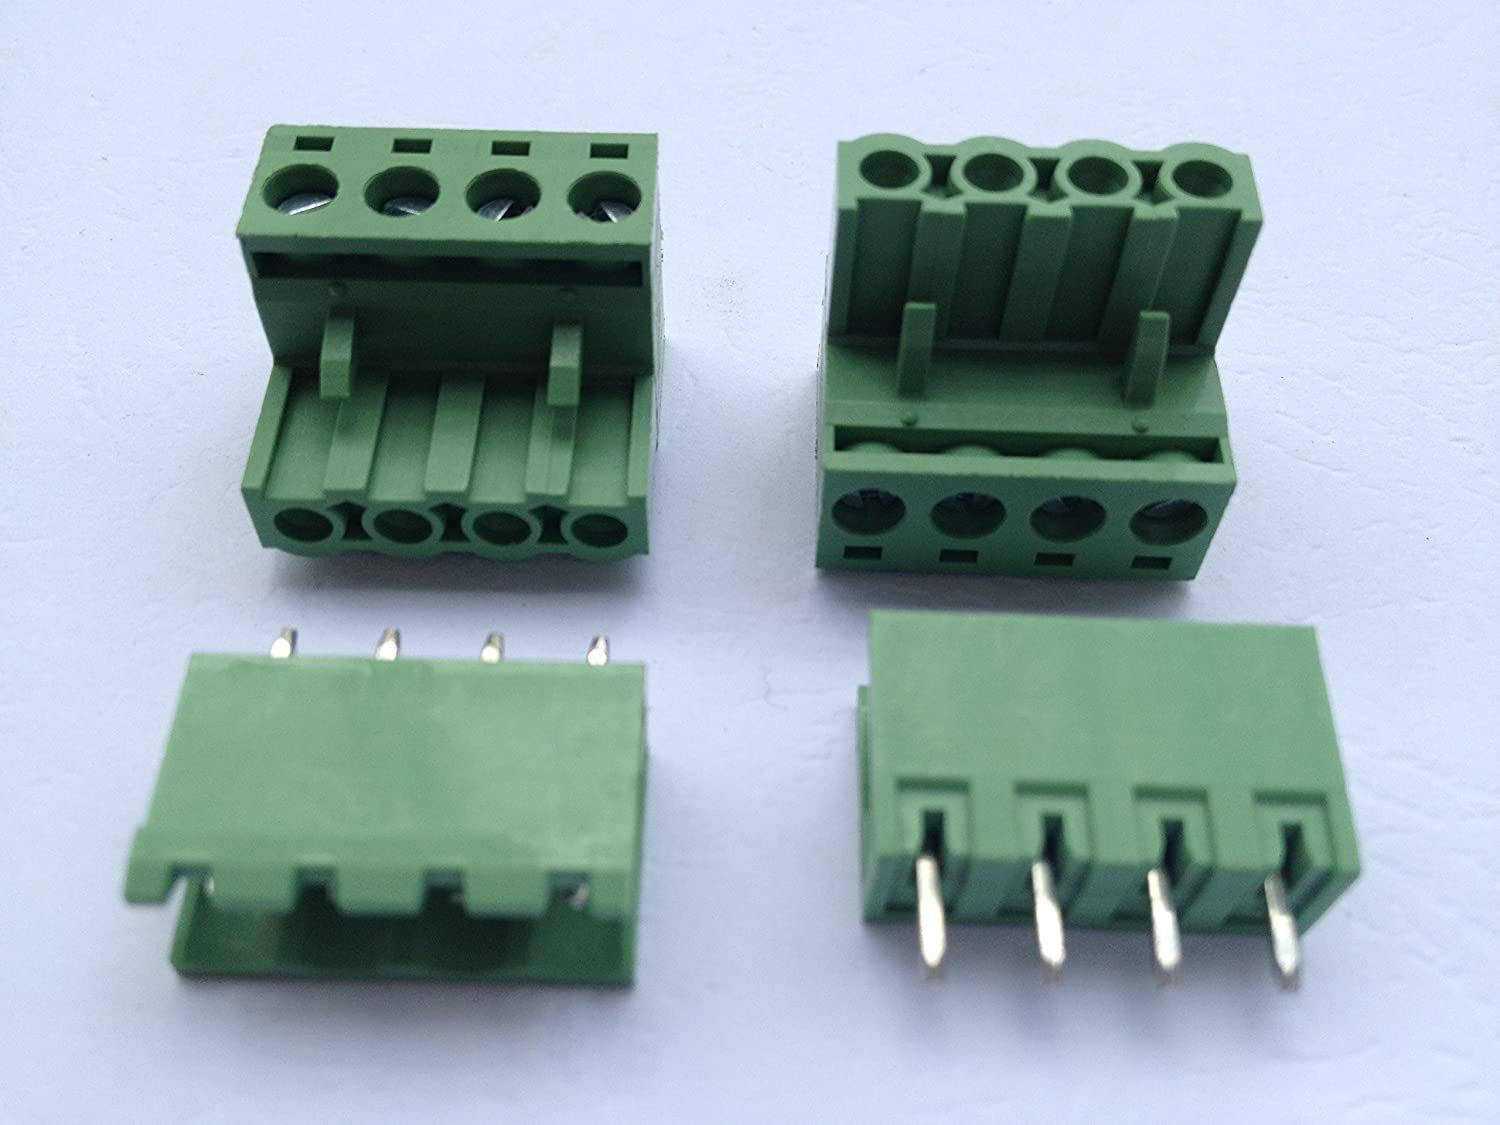 40 Pcs 4pin/way Pitch 5.08mm Screw Terminal Block Connector Green Color Pluggable Type With Straight Pin